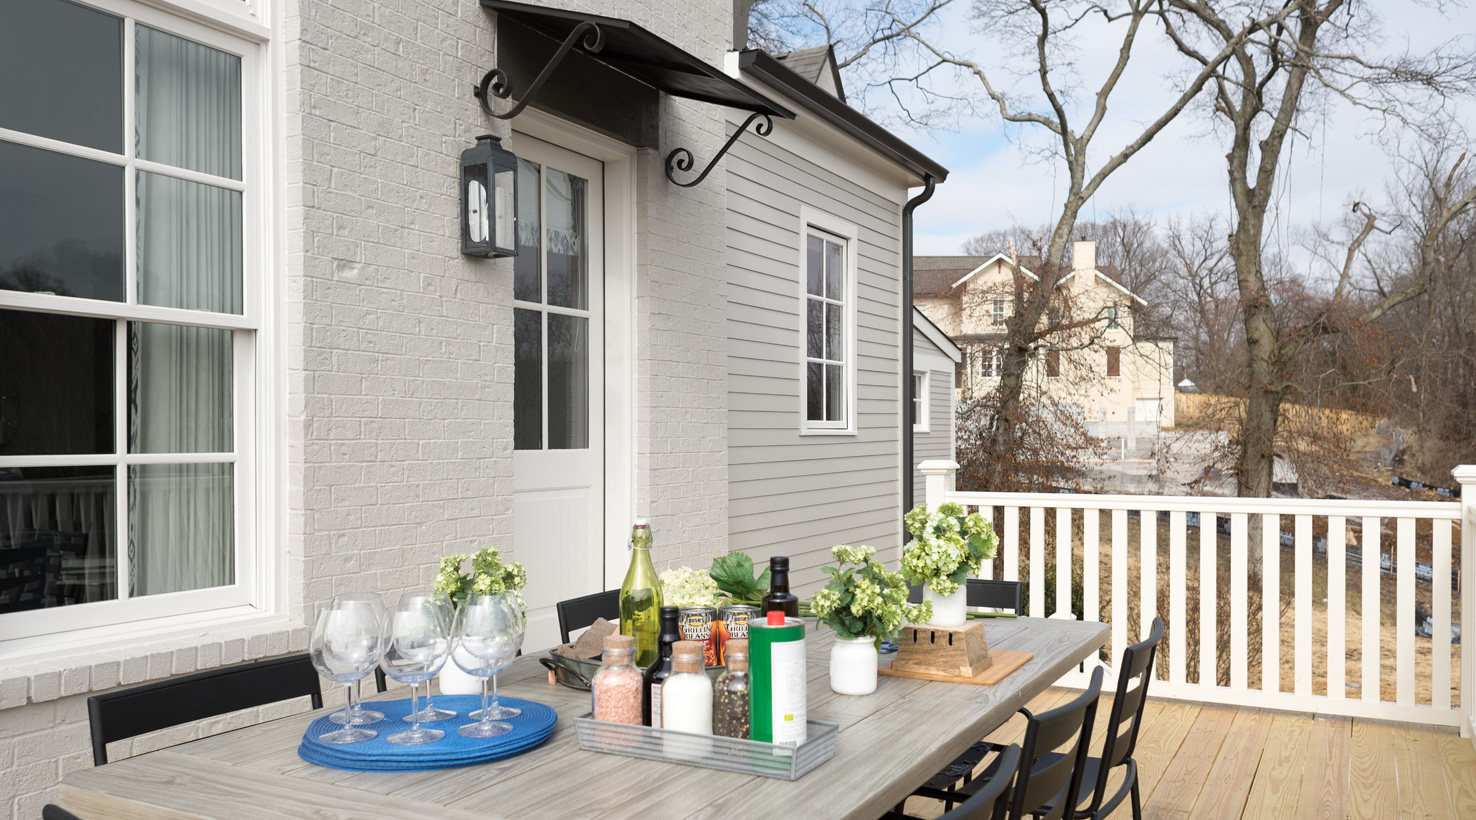 The hgtv smart home 2015 sponsored by sherwin williams - Sherwin williams exterior colors 2014 ...